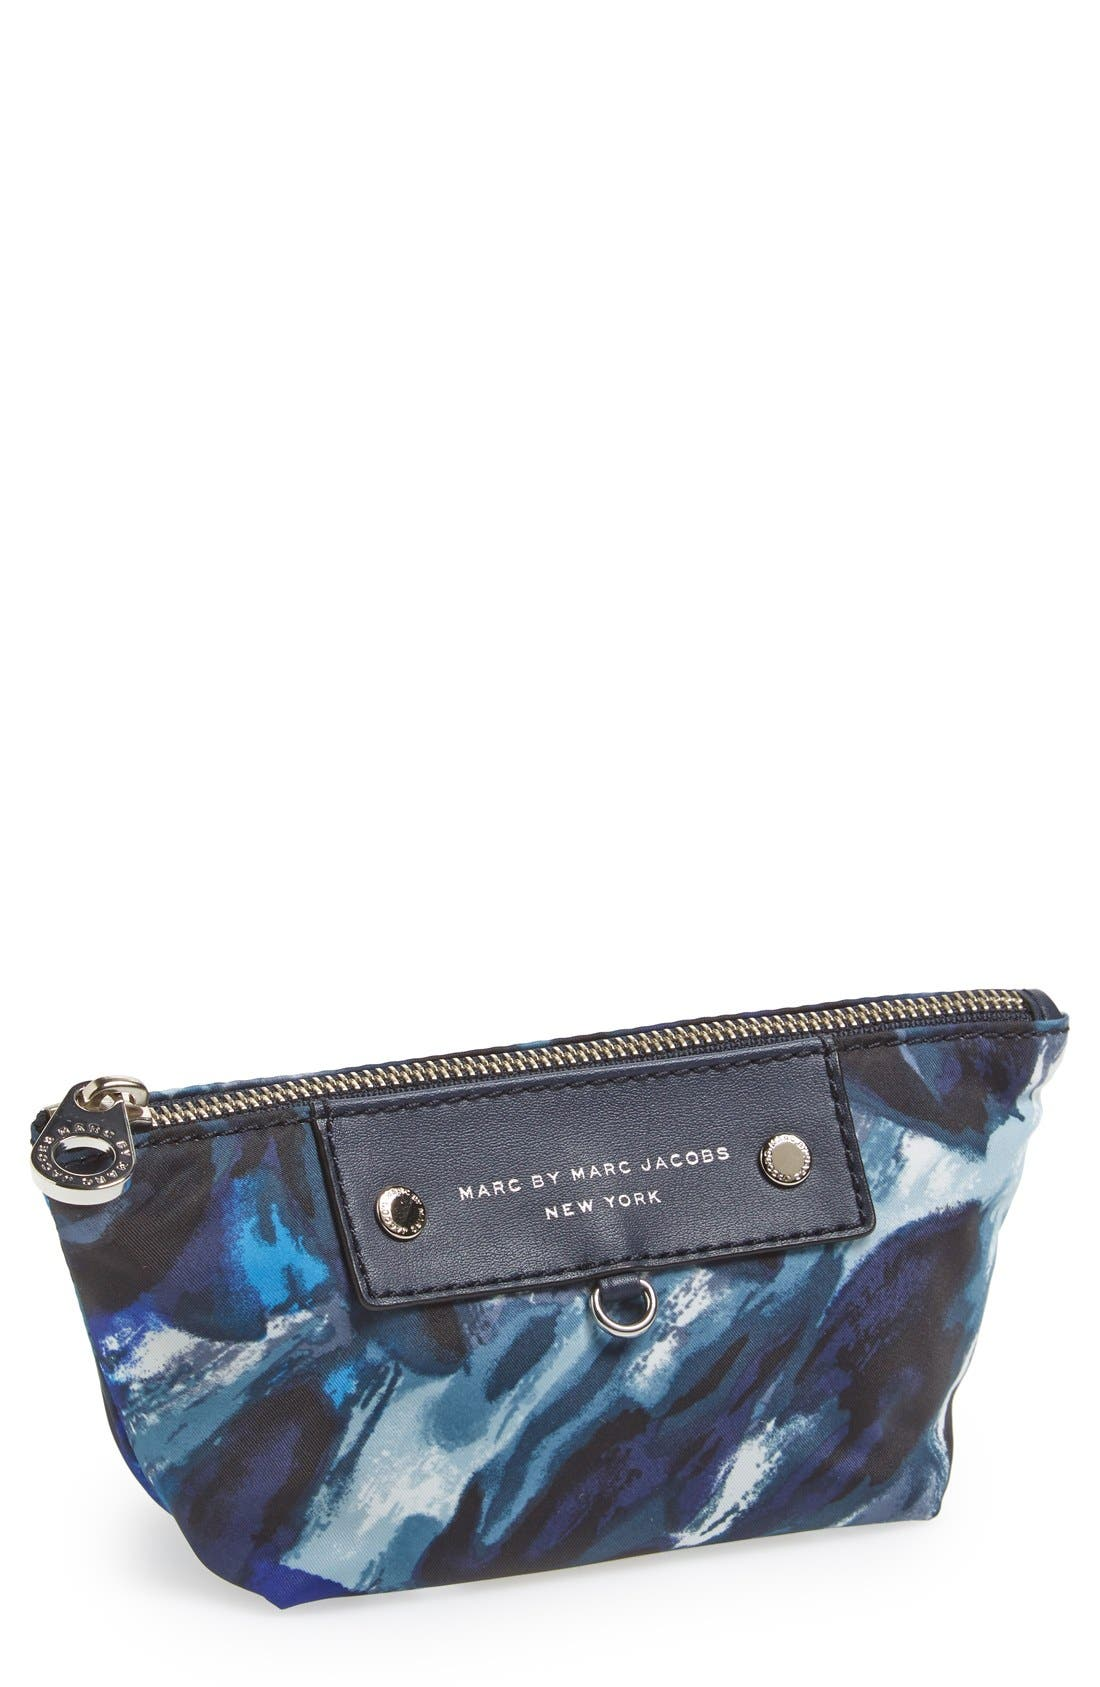 Alternate Image 1 Selected - MARC BY MARC JACOBS 'Small Preppy' Cosmetics Case